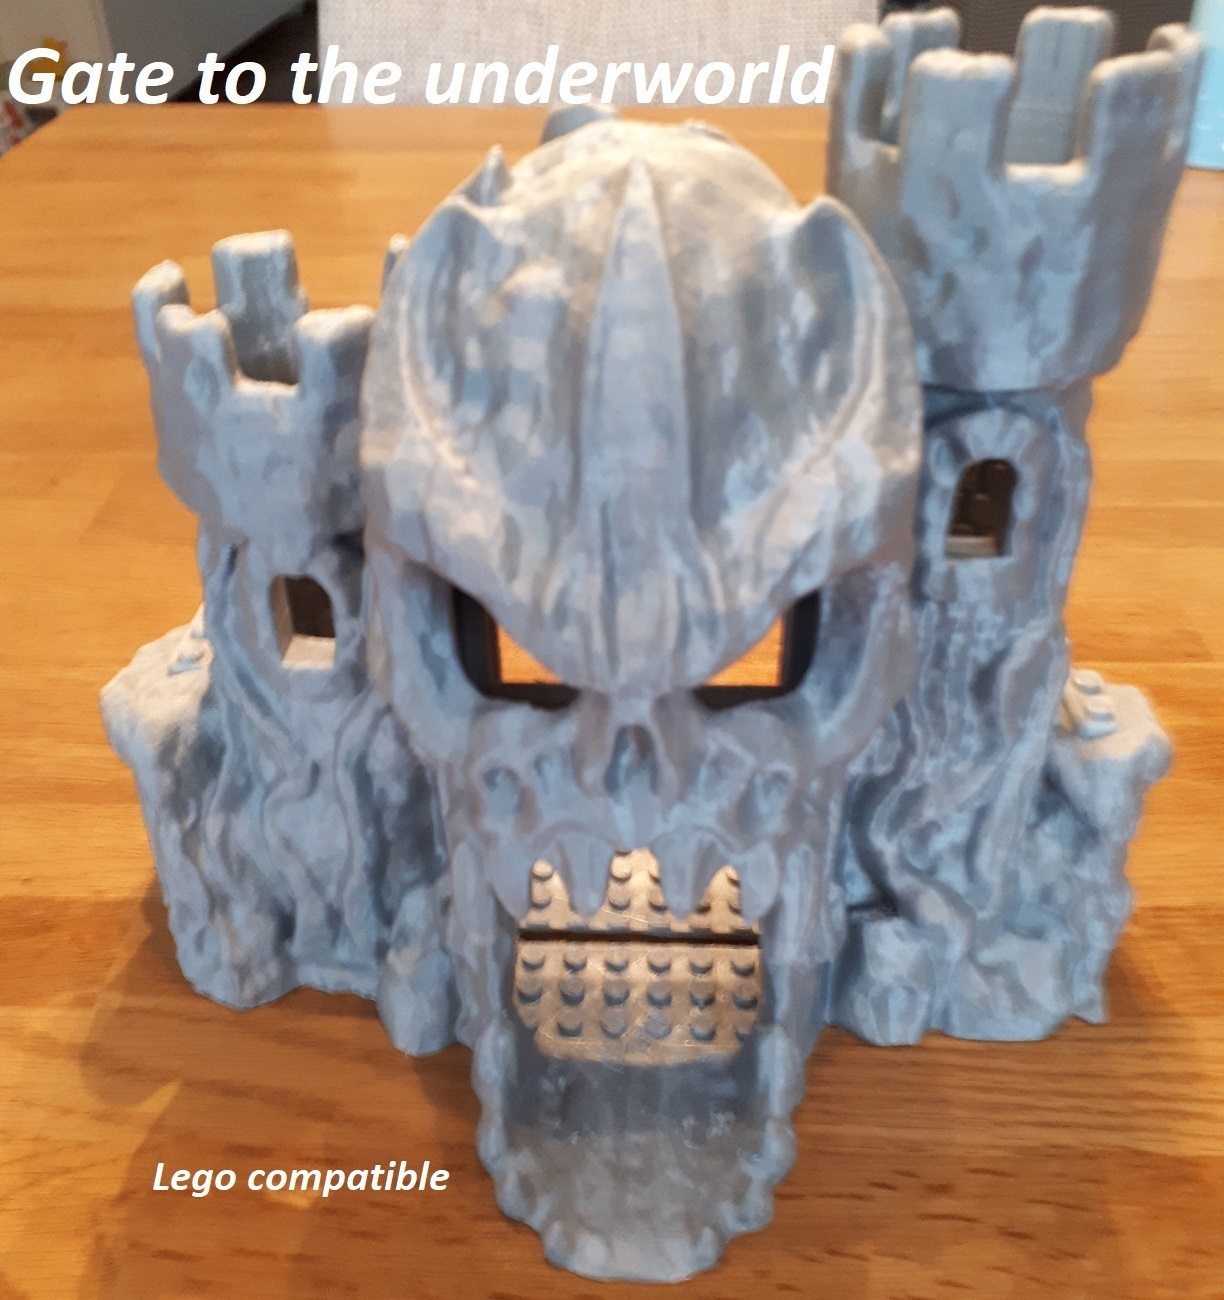 20180910_192942.jpg Download free STL file Gate to the Underworld (Lego compatible) • 3D printable model, edge